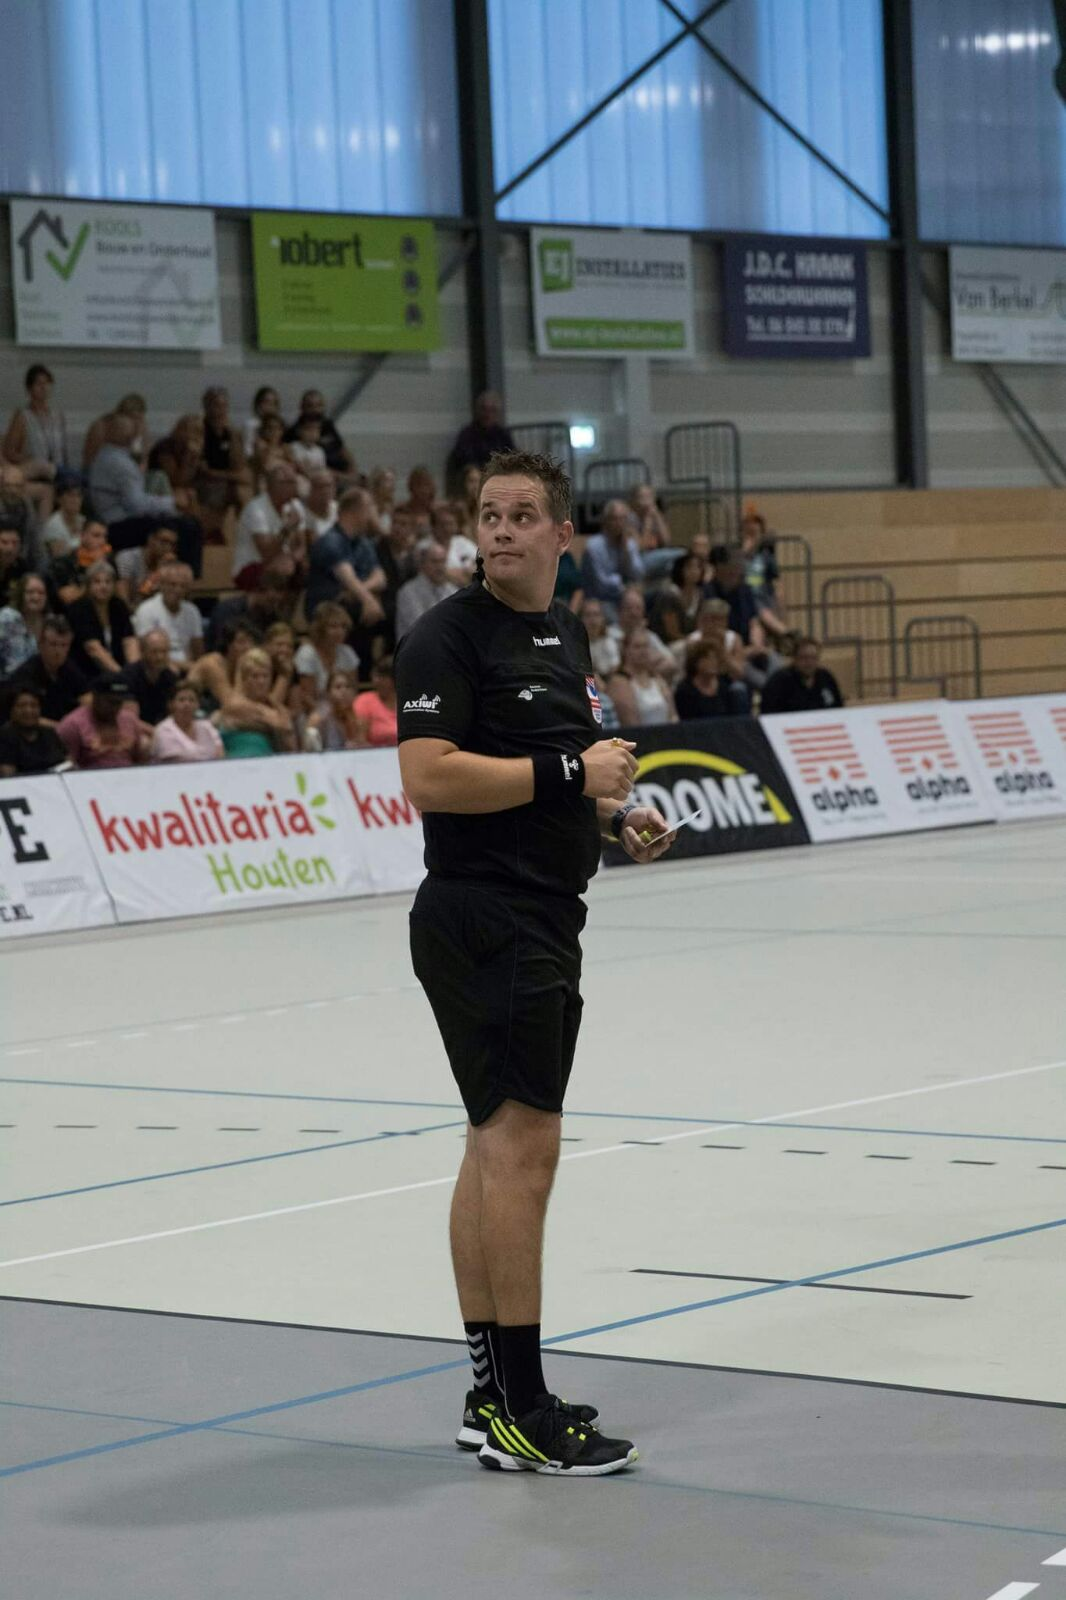 /wireless-communication-system-handball-referee-axiwi